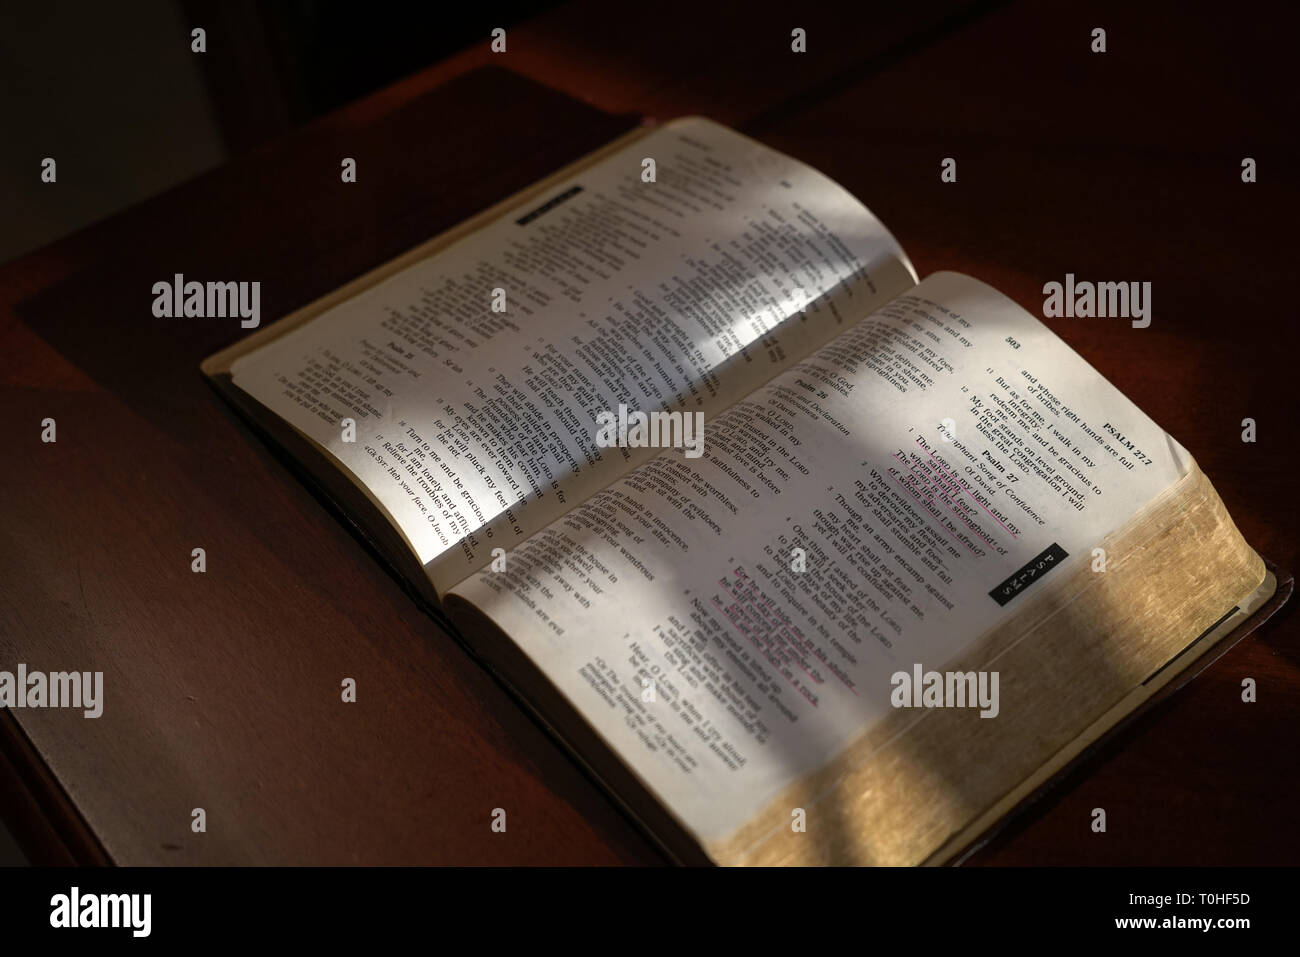 Open bible on a dark wood table with light and focus on